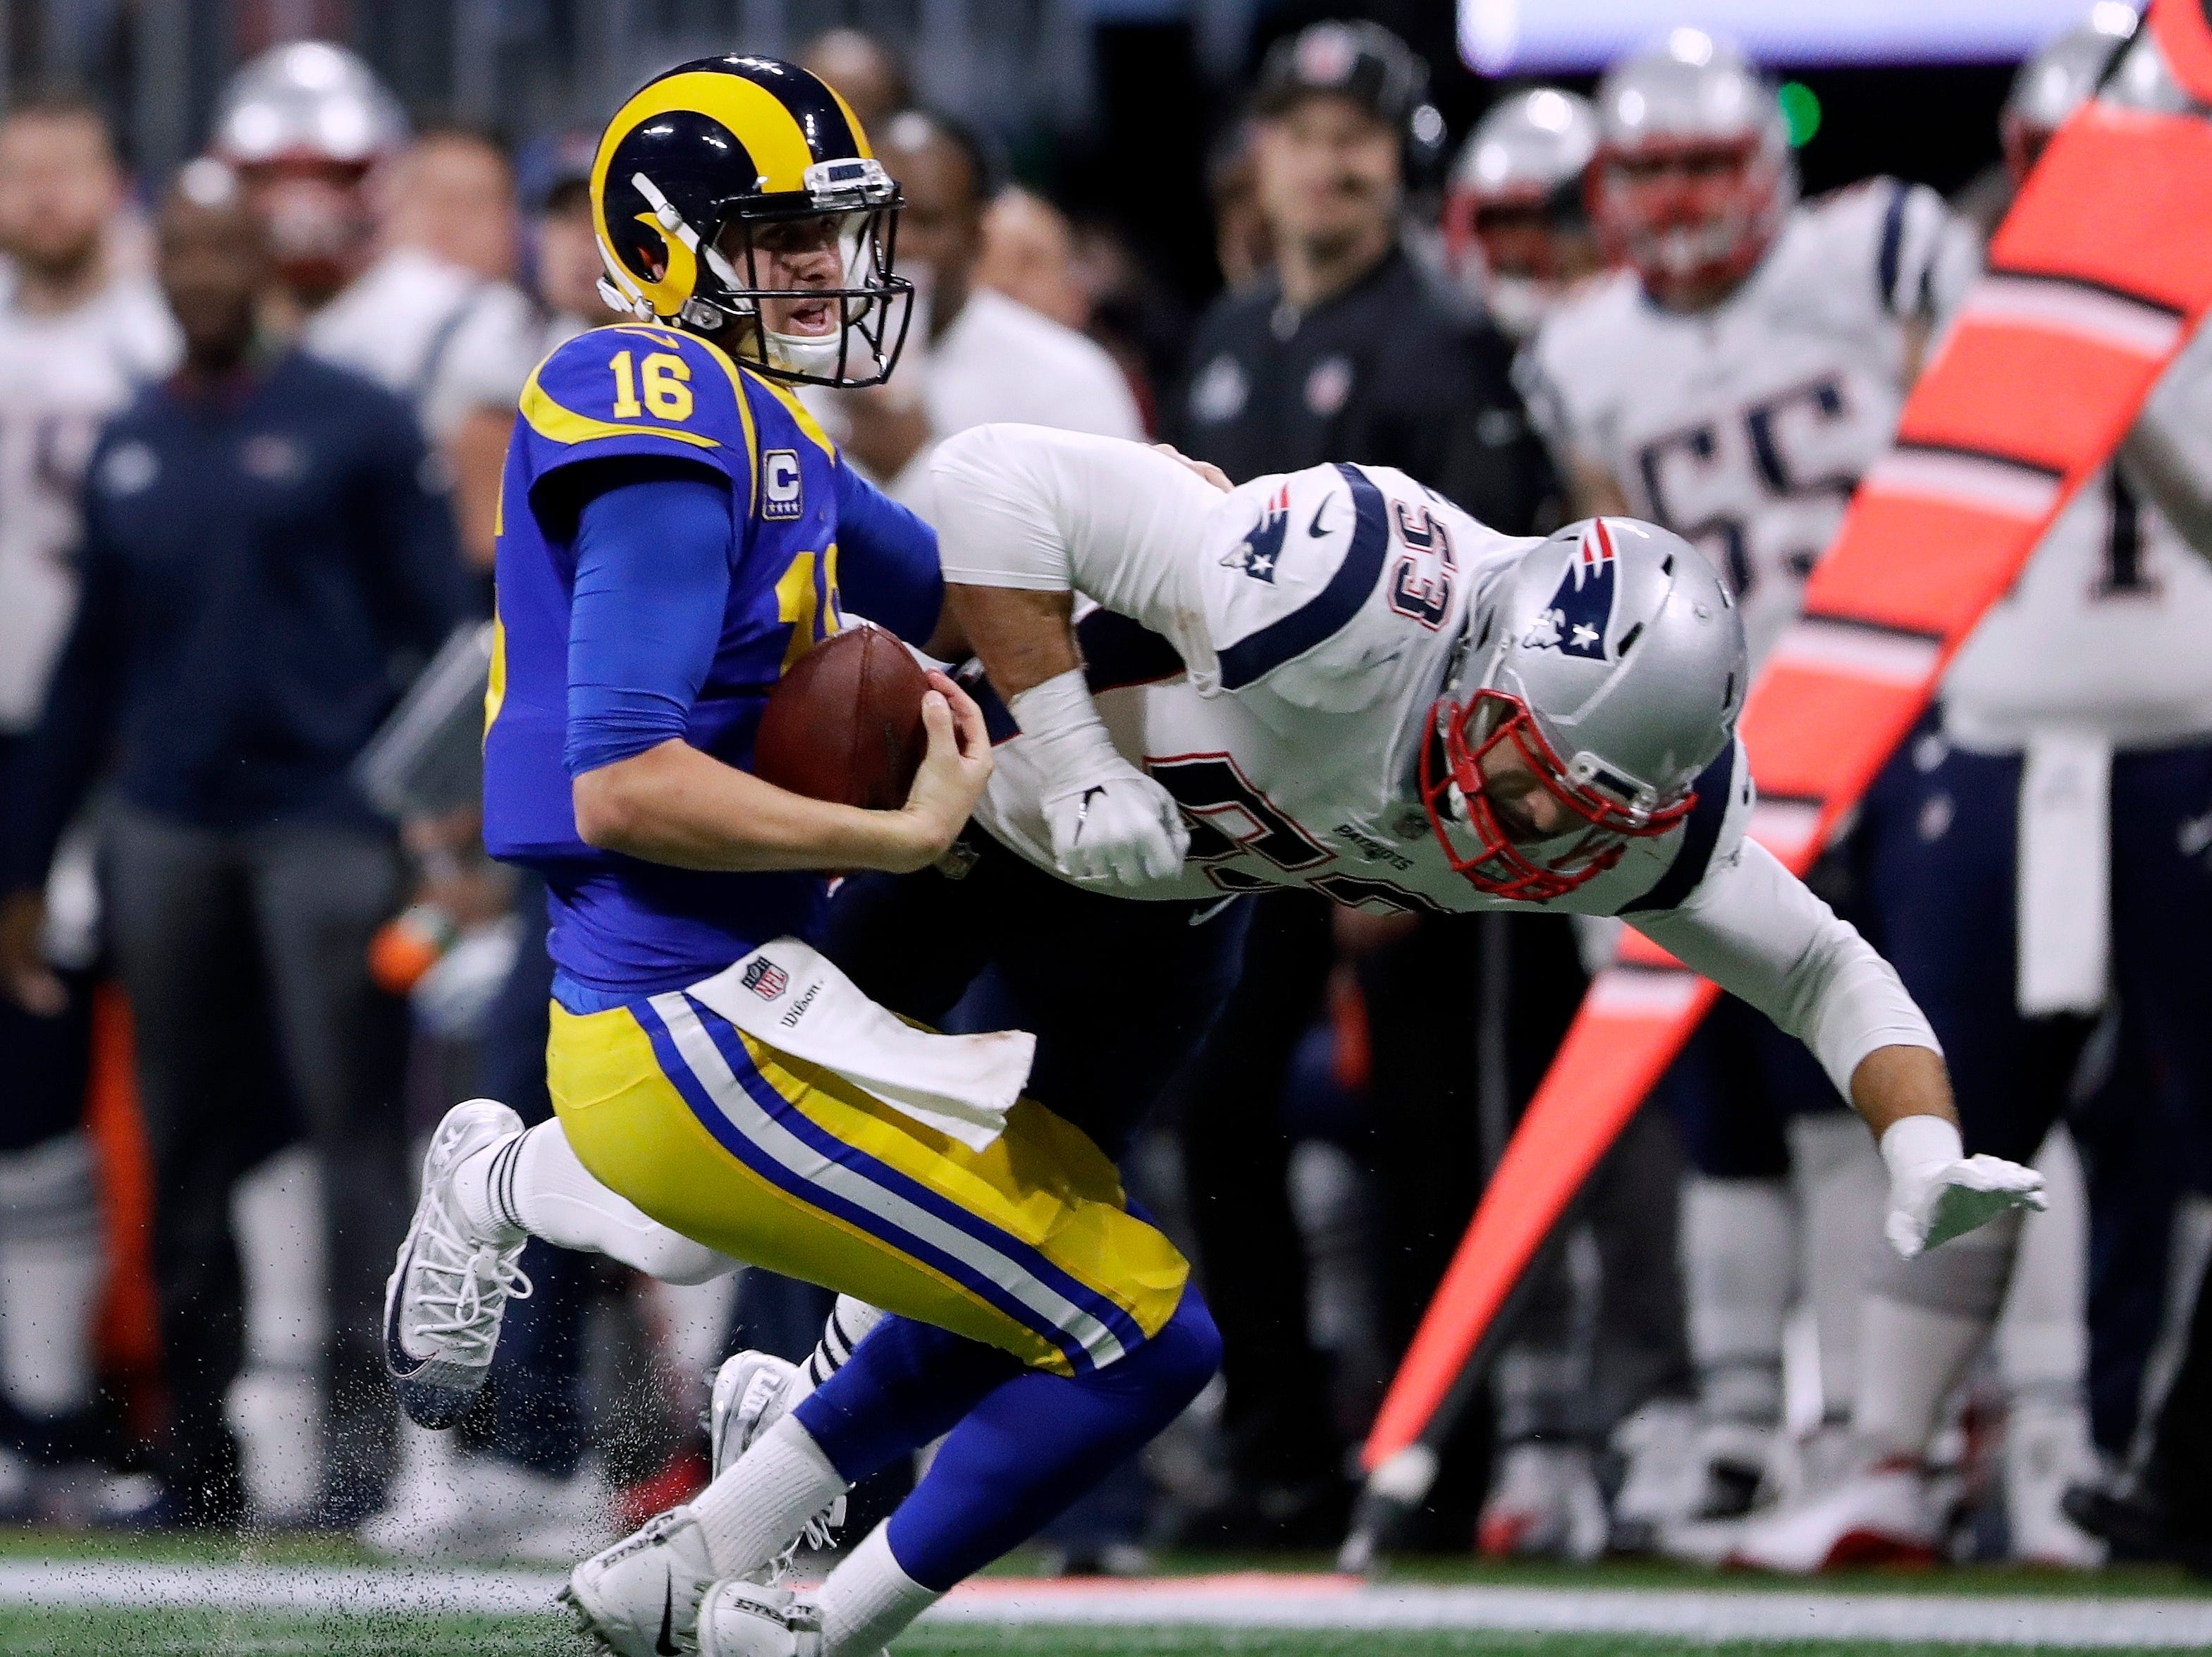 Los Angeles Rams' Jared Goff (16) gets sacked by New England Patriots' Kyle Van Noy (53) during the first half.